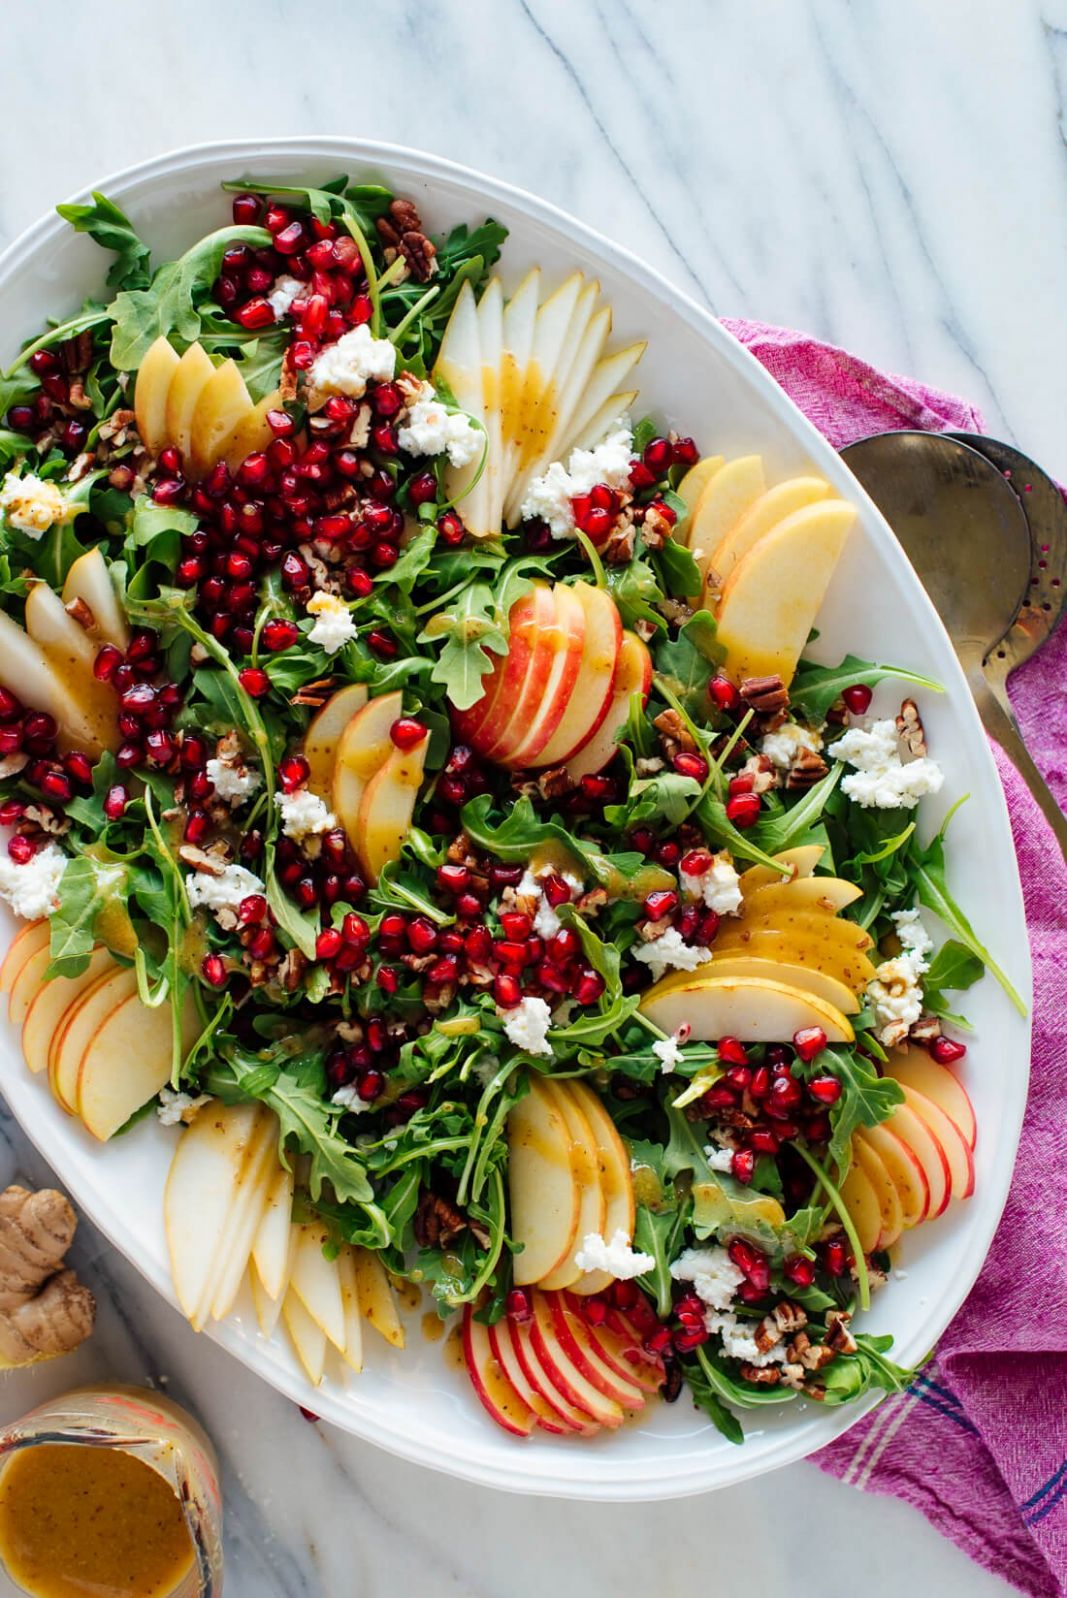 Pomegranate & Pear Green Salad with Ginger Dressing - Cookie and Kate